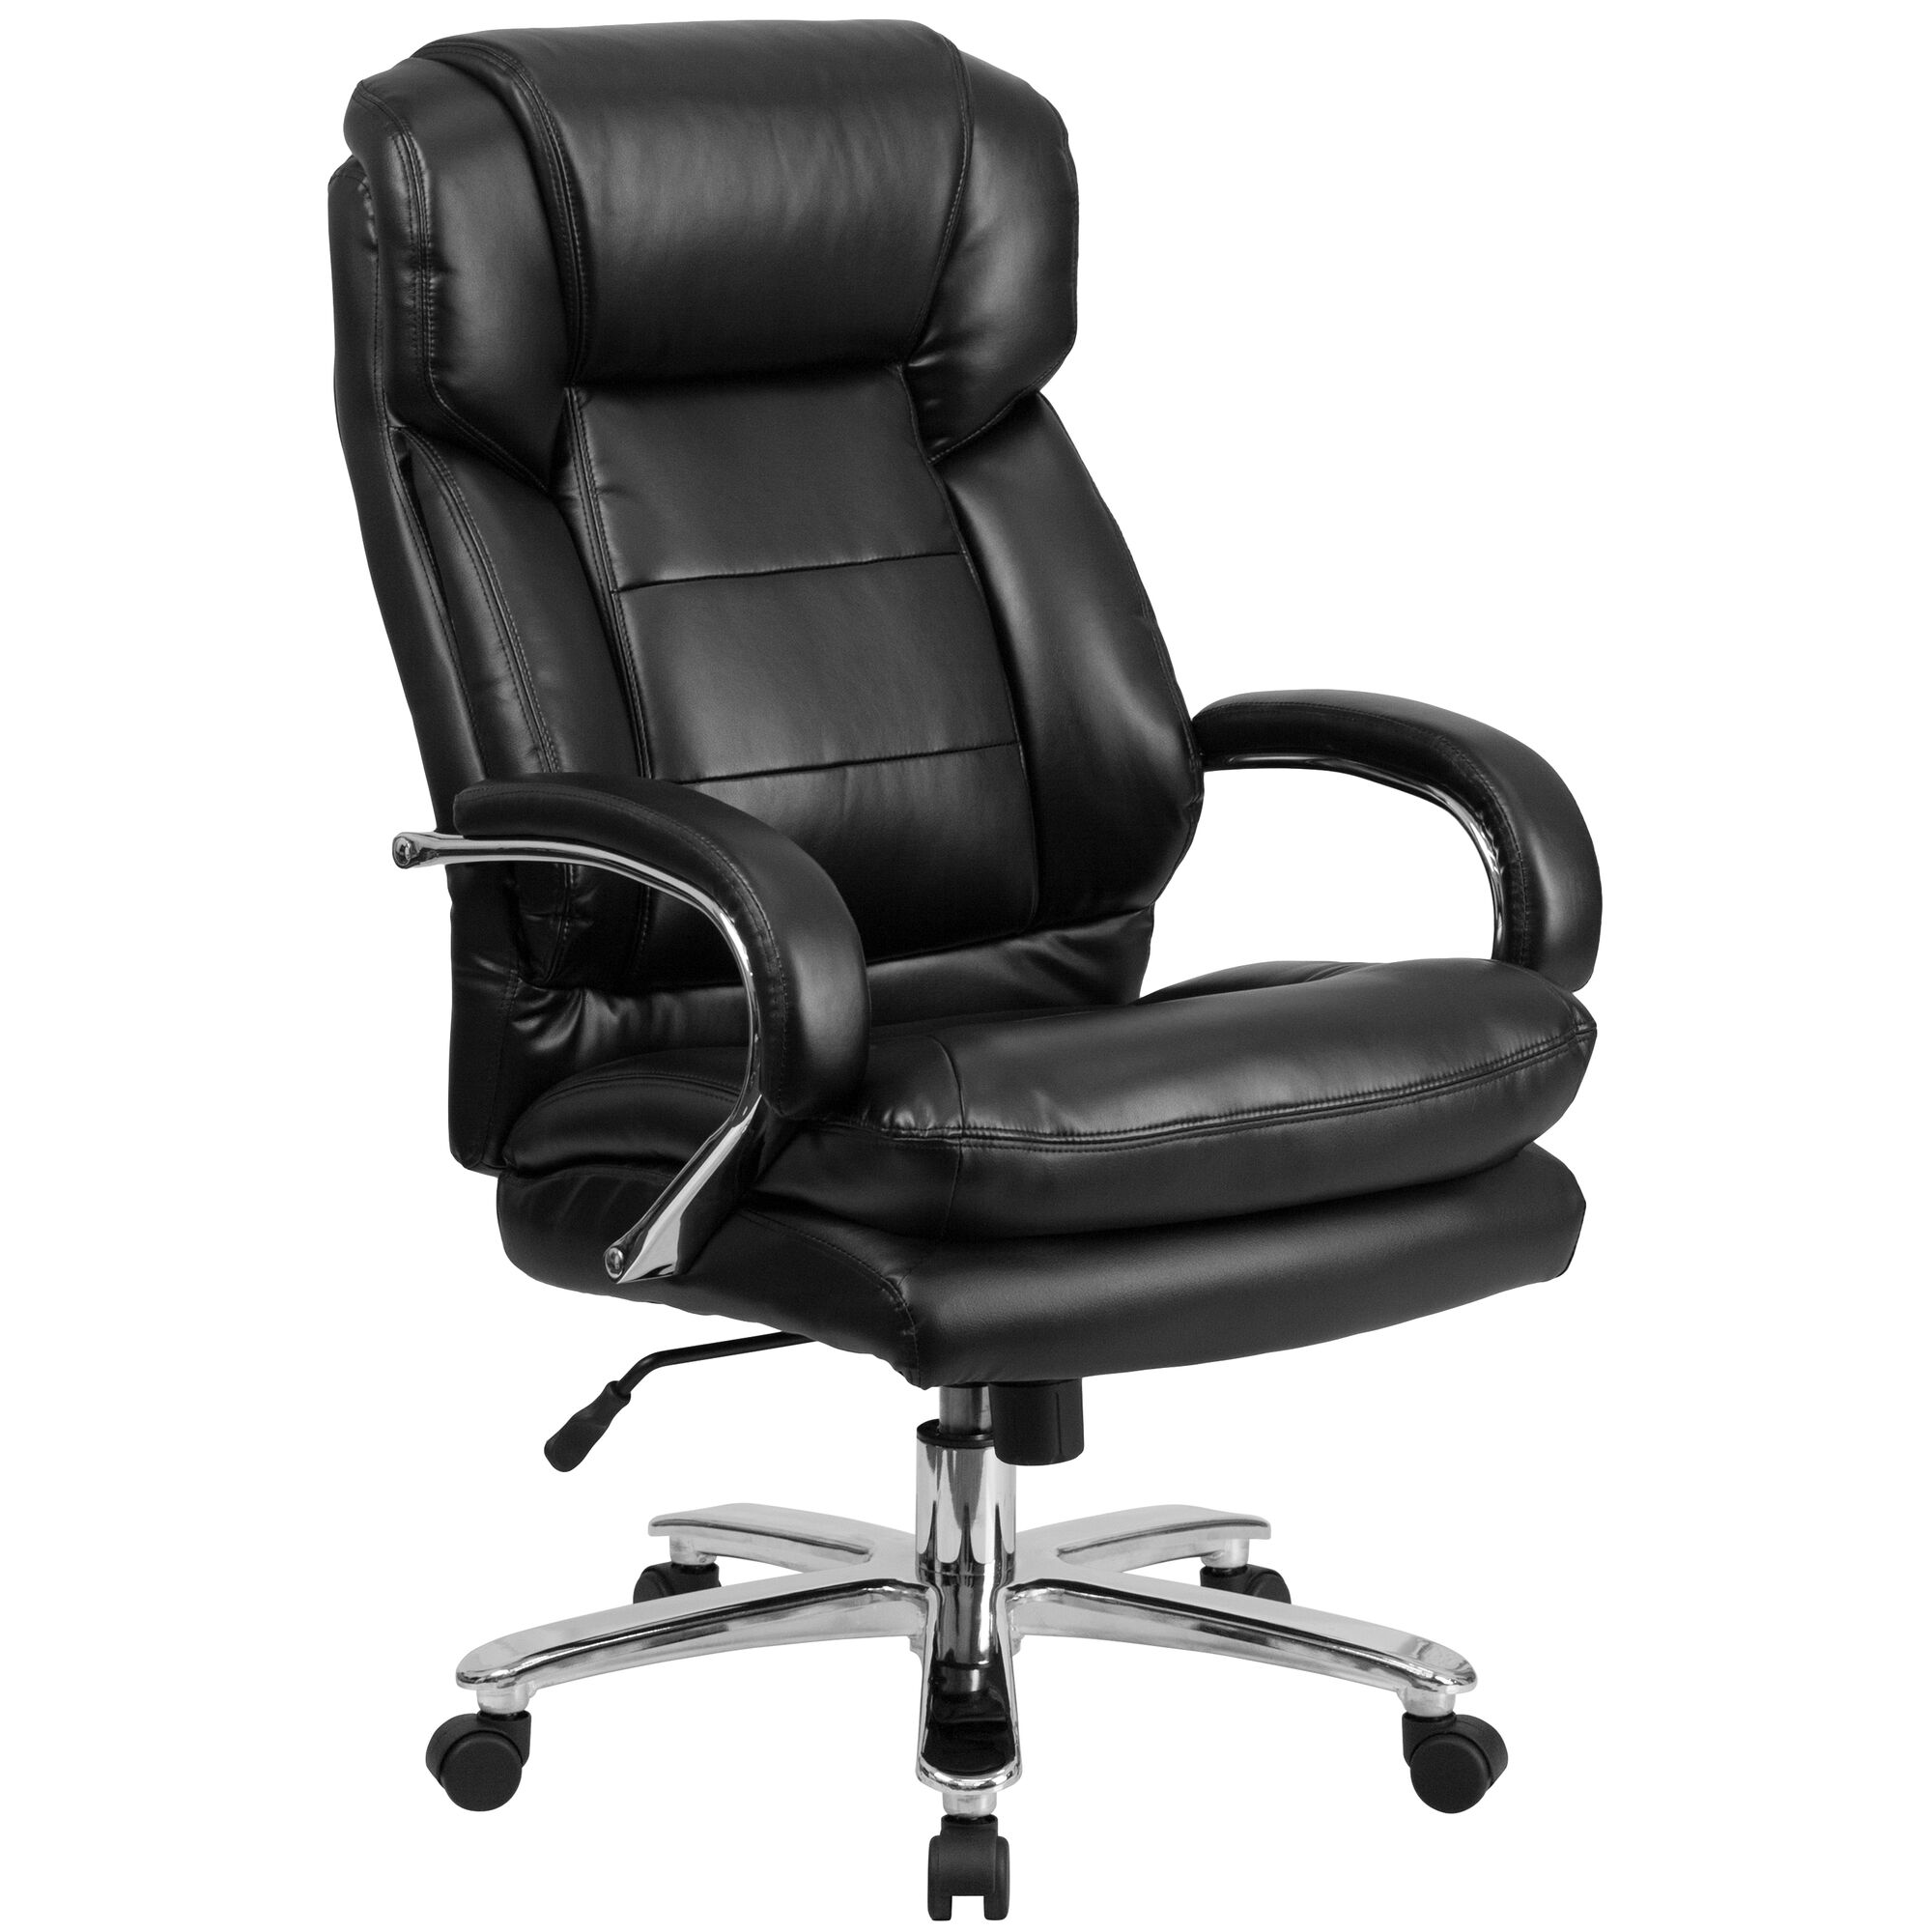 Big & Tall Office Chair  Black LeatherSoft Swivel Executive Desk Chair  with Wheels